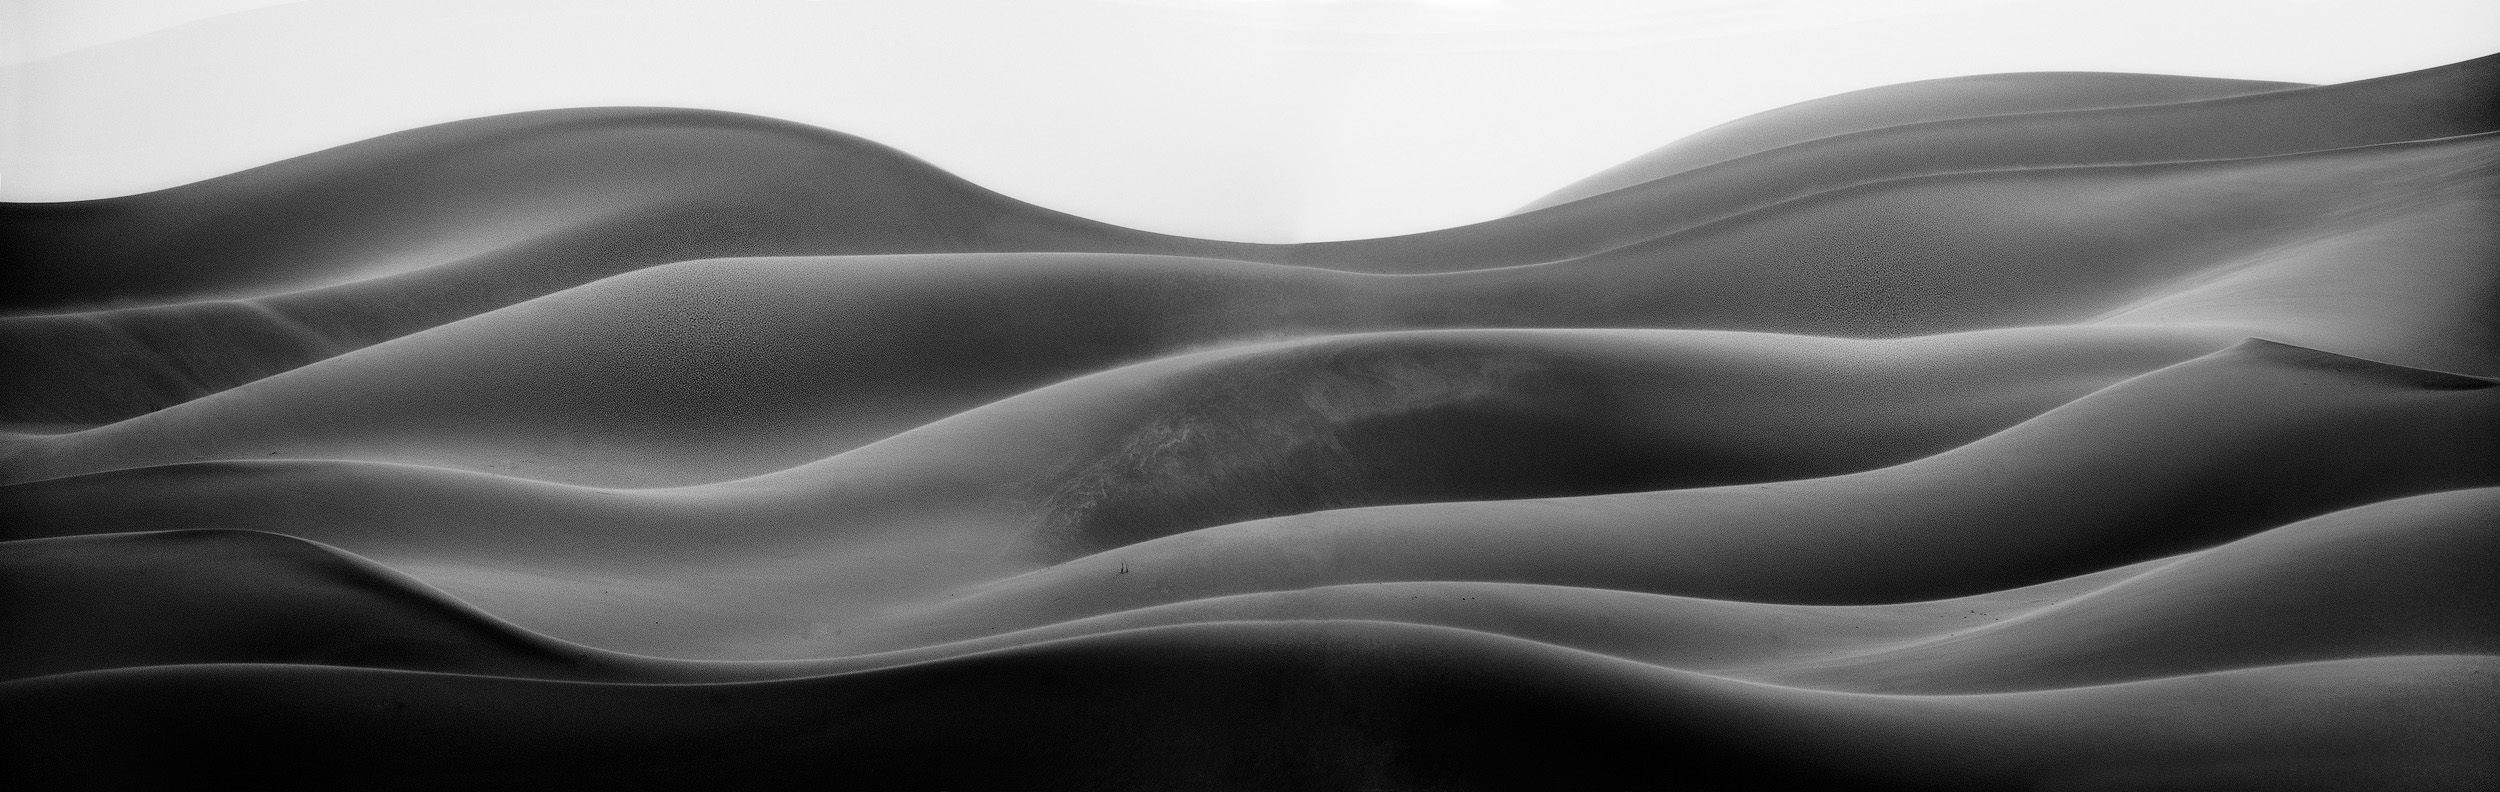 Curves   A black and white study of the dune shapes in a sandstorm in the Sahara.